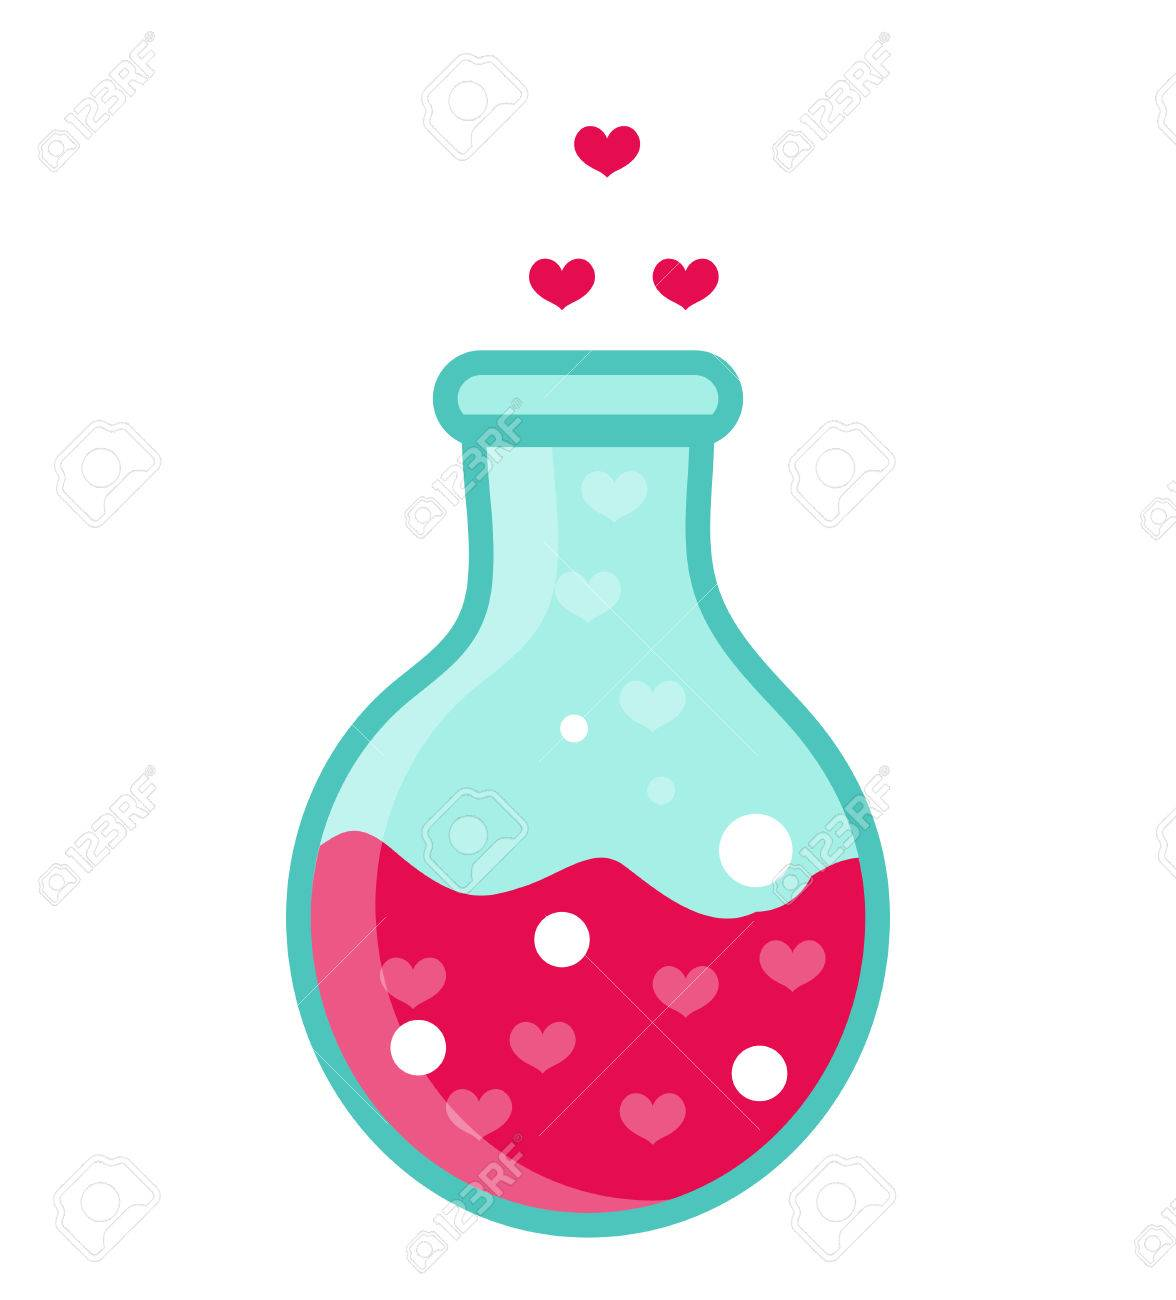 love potion icon flat design isolated on white background rh 123rf com clip art with no white background how to insert clipart without white background